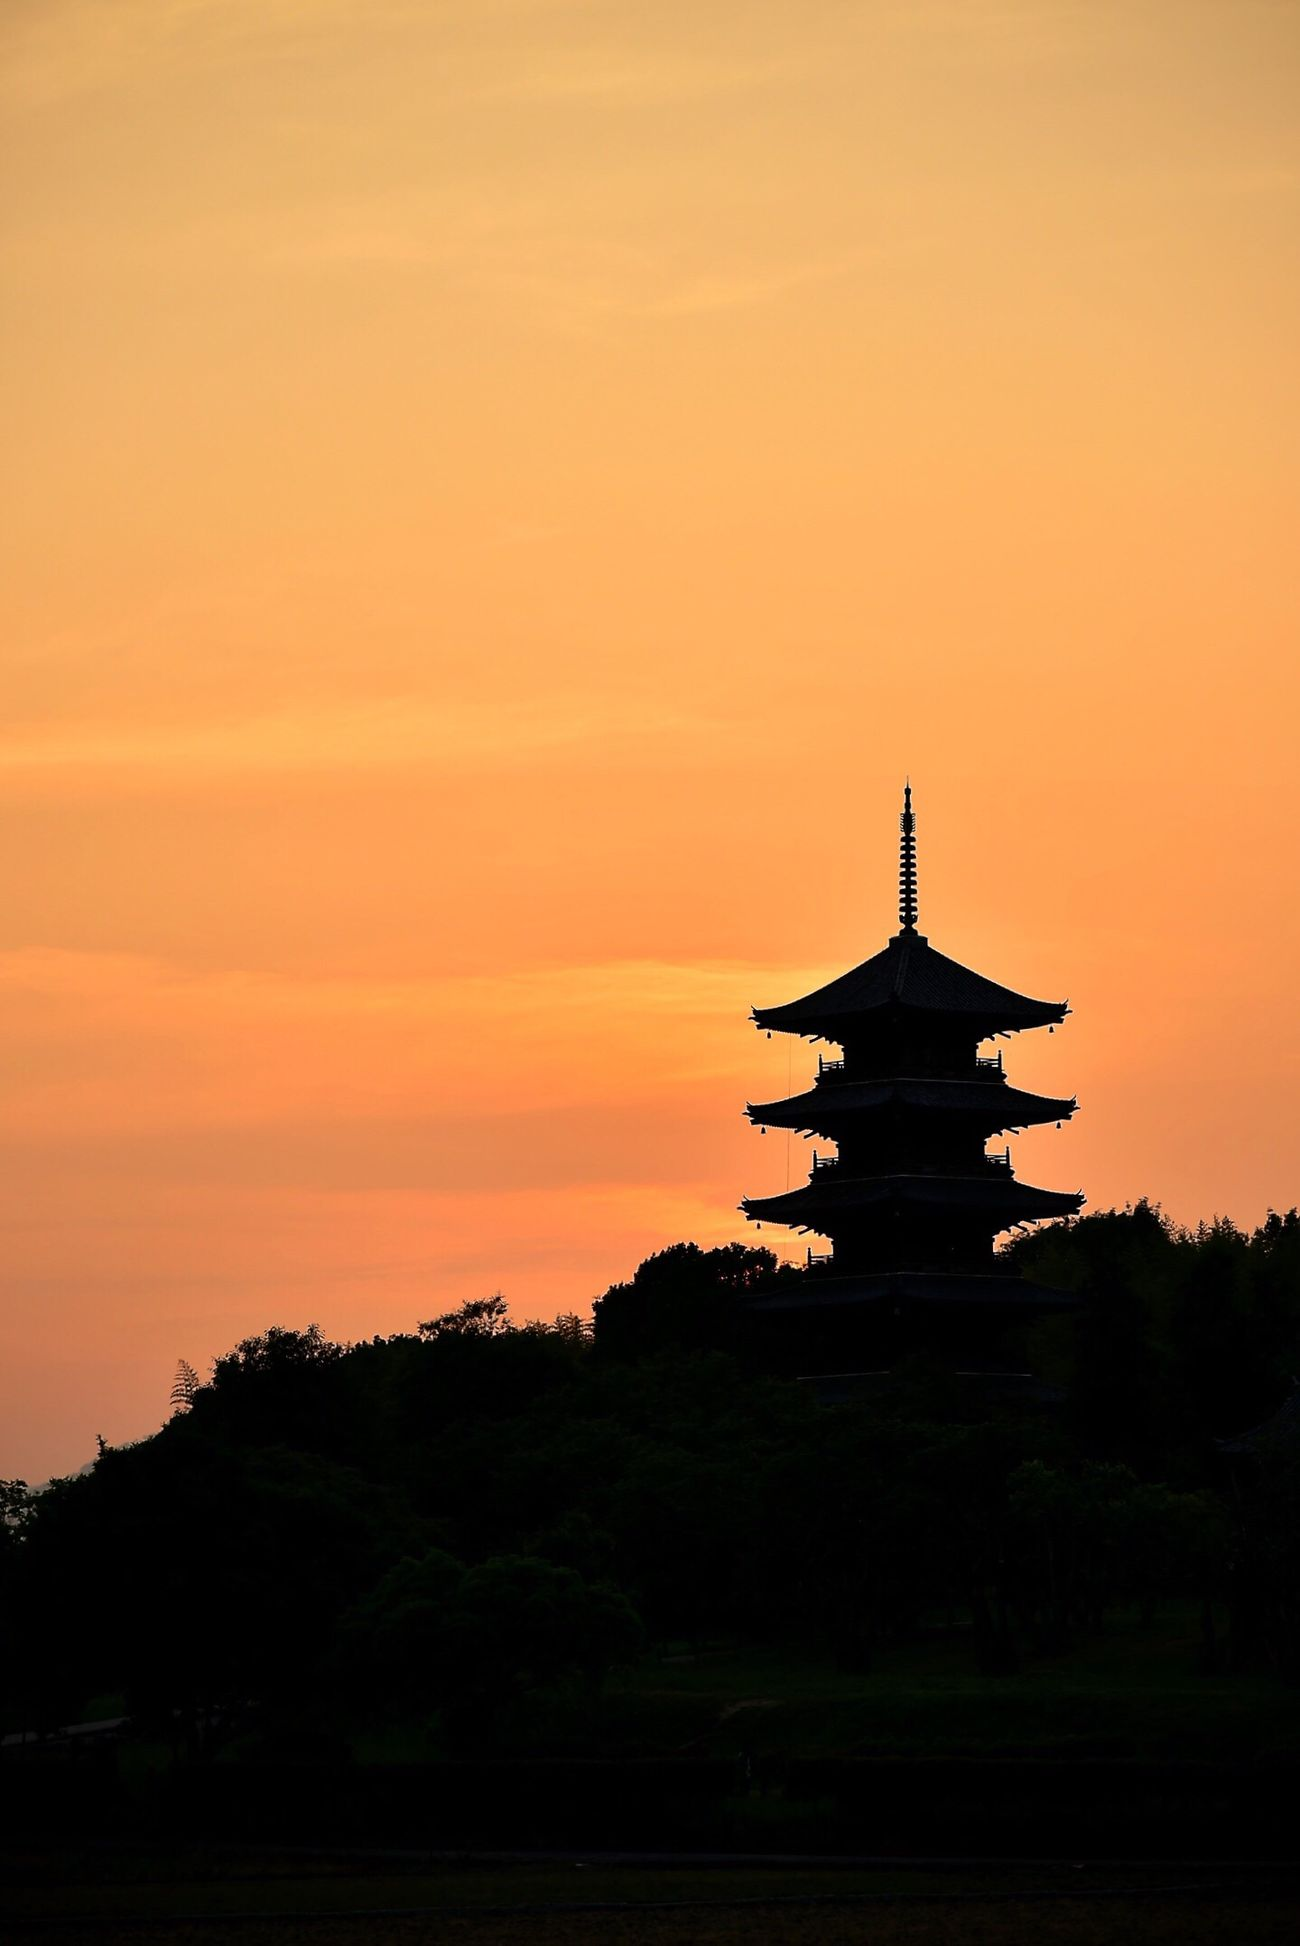 Okayama Nikon EyeEm Japan EyeEm Best Edits Taking Photos EyeEm Best Shots Landscape Five-storied Pagoda 備中国分寺 五重塔 Sunset Temple Evening View